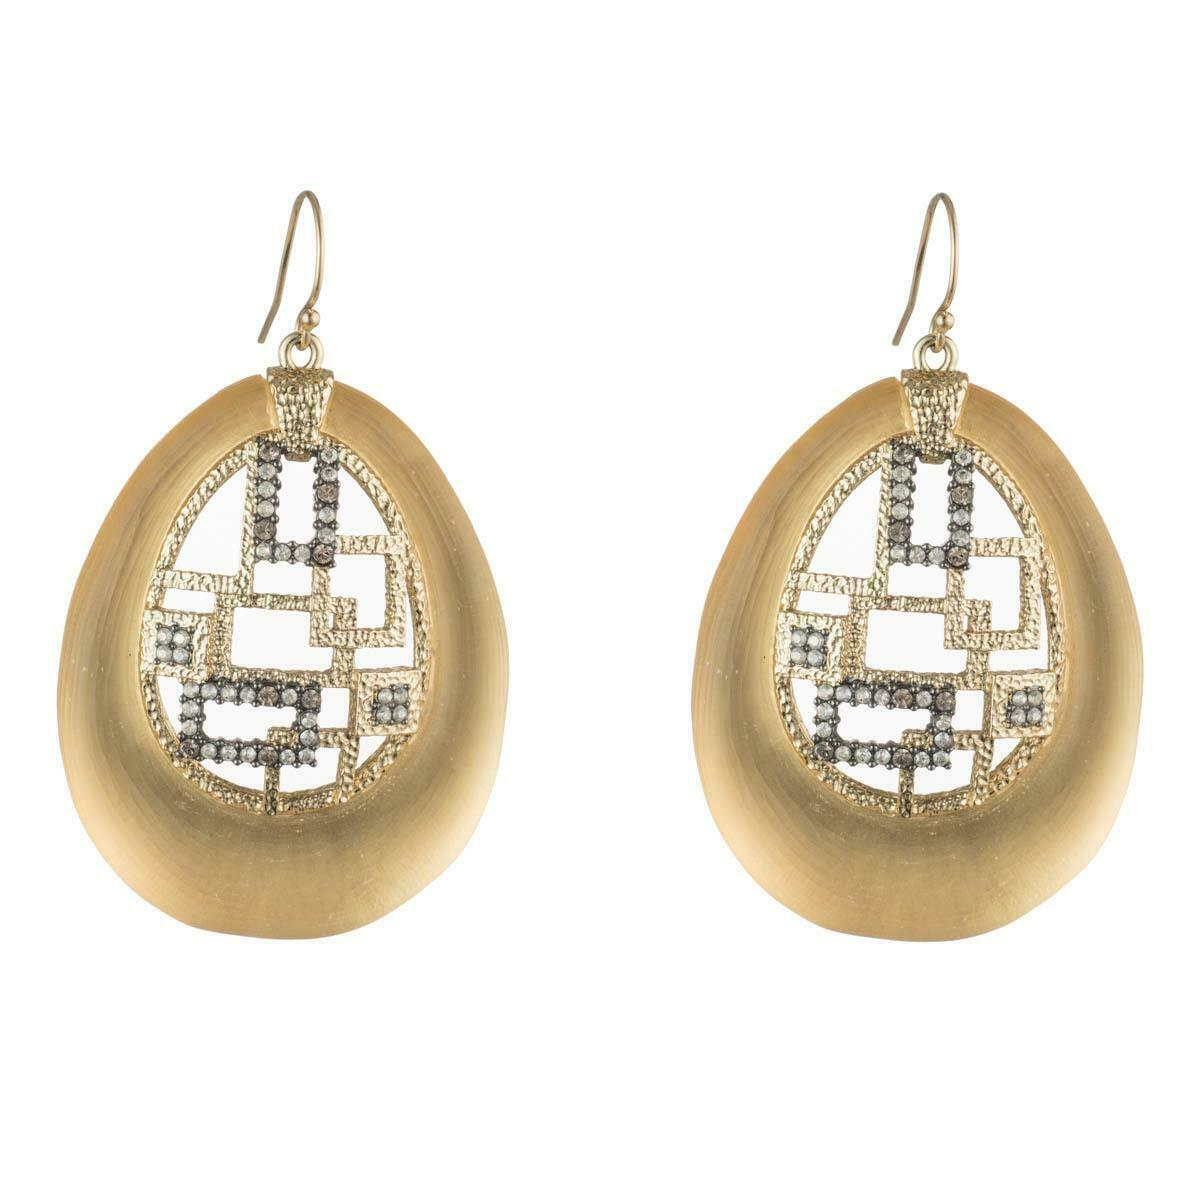 Primary image for Alexis Bittar Brutalist Gold Lucite Crystal 14k Gold Plated Drop Earrings NWT